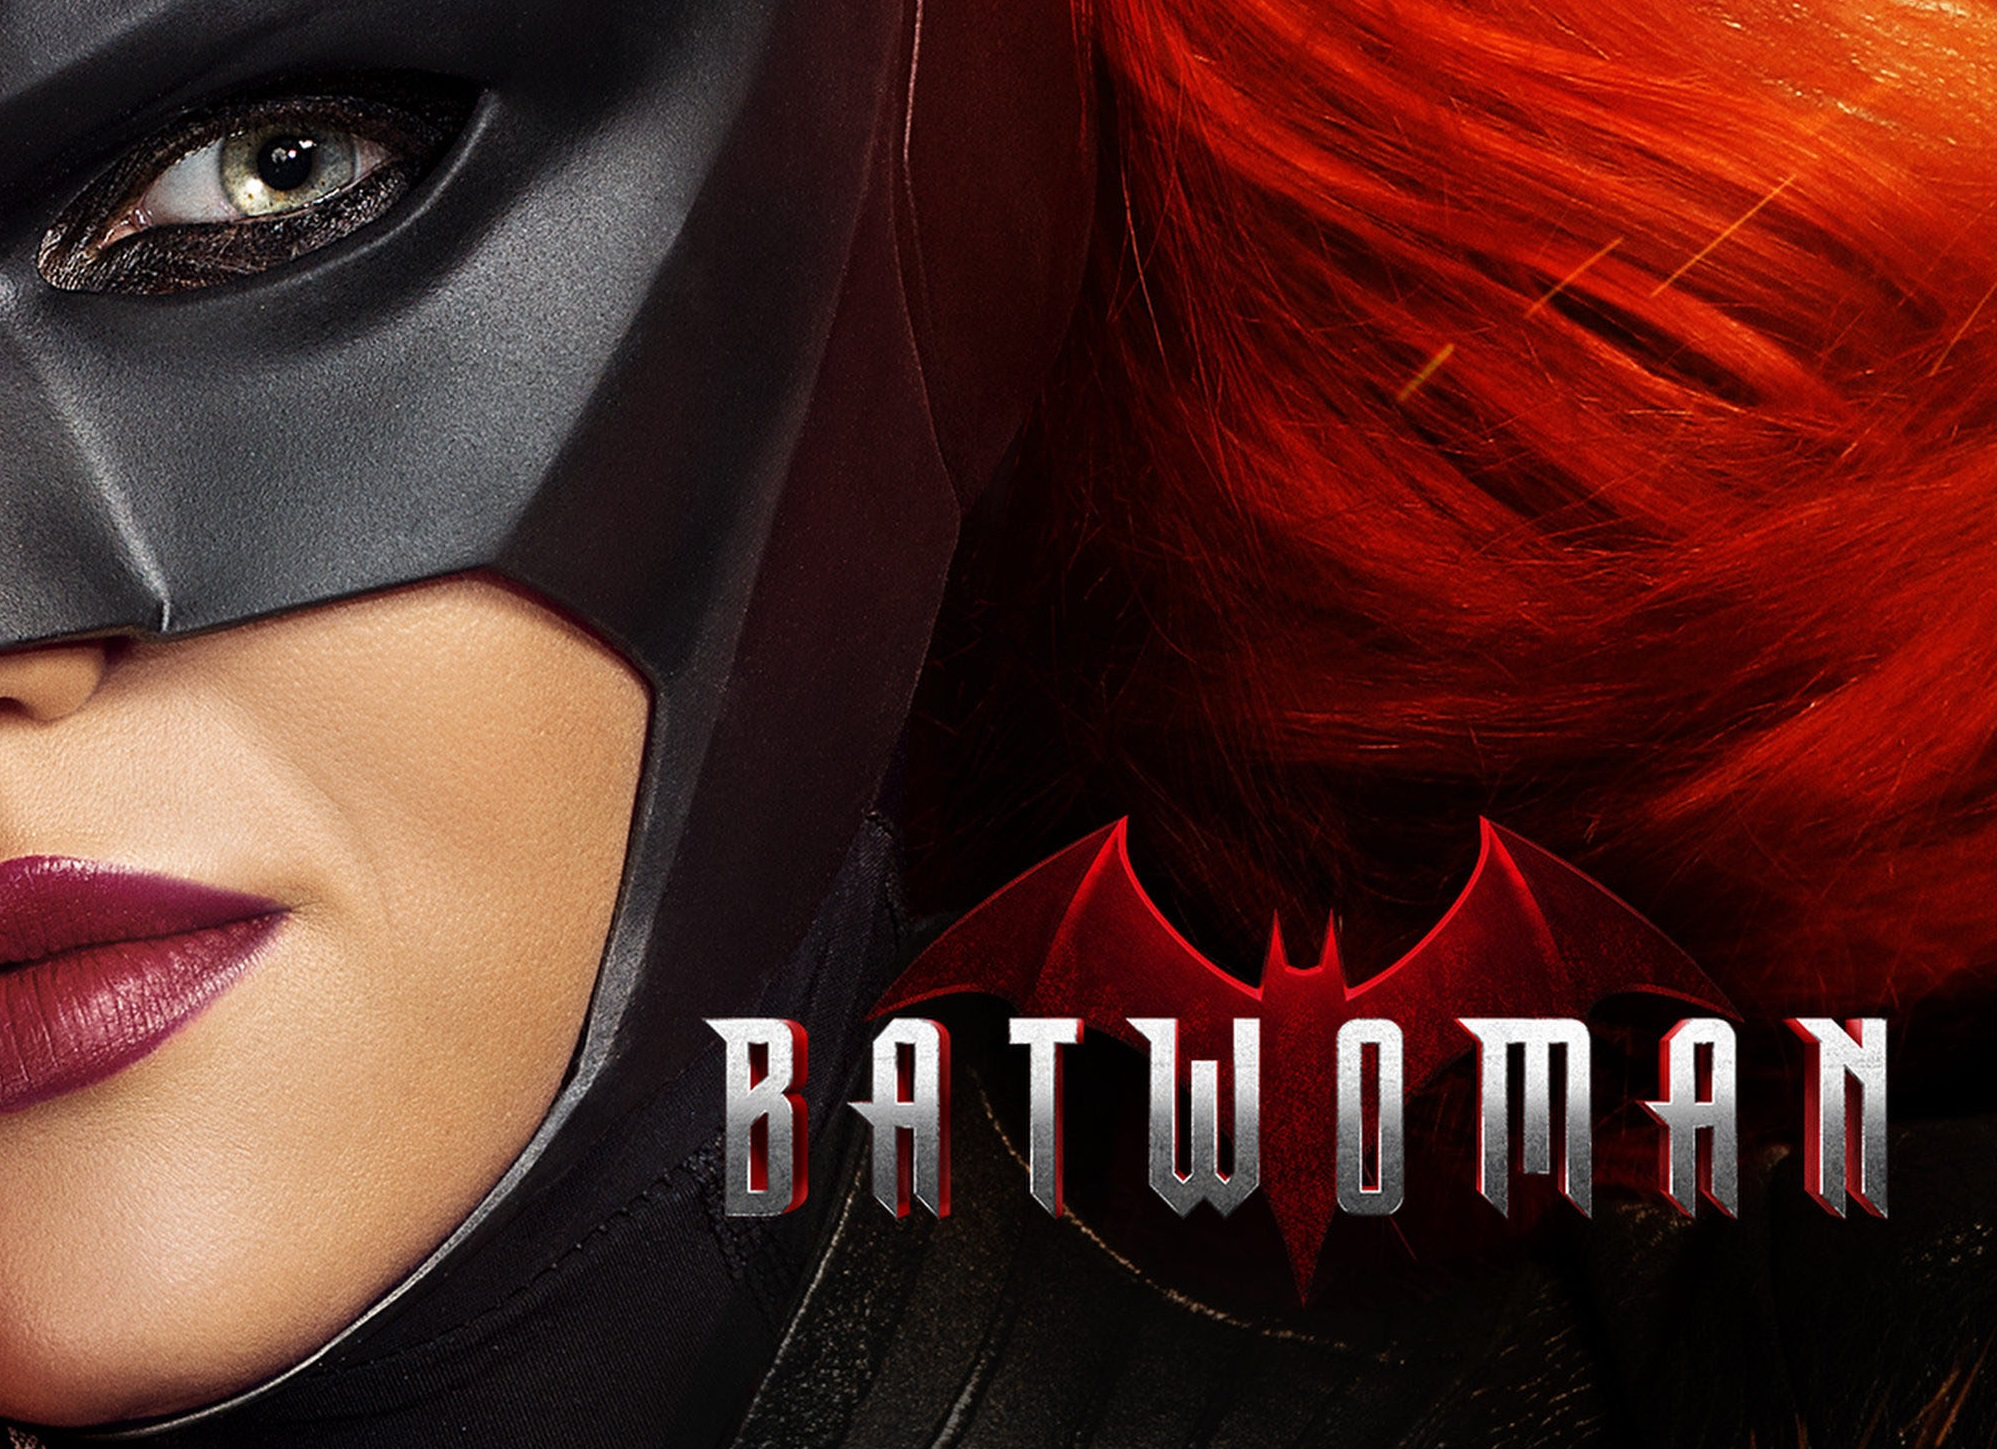 Batwoman Xxx get an early look at watchmen and batwoman at new york comic